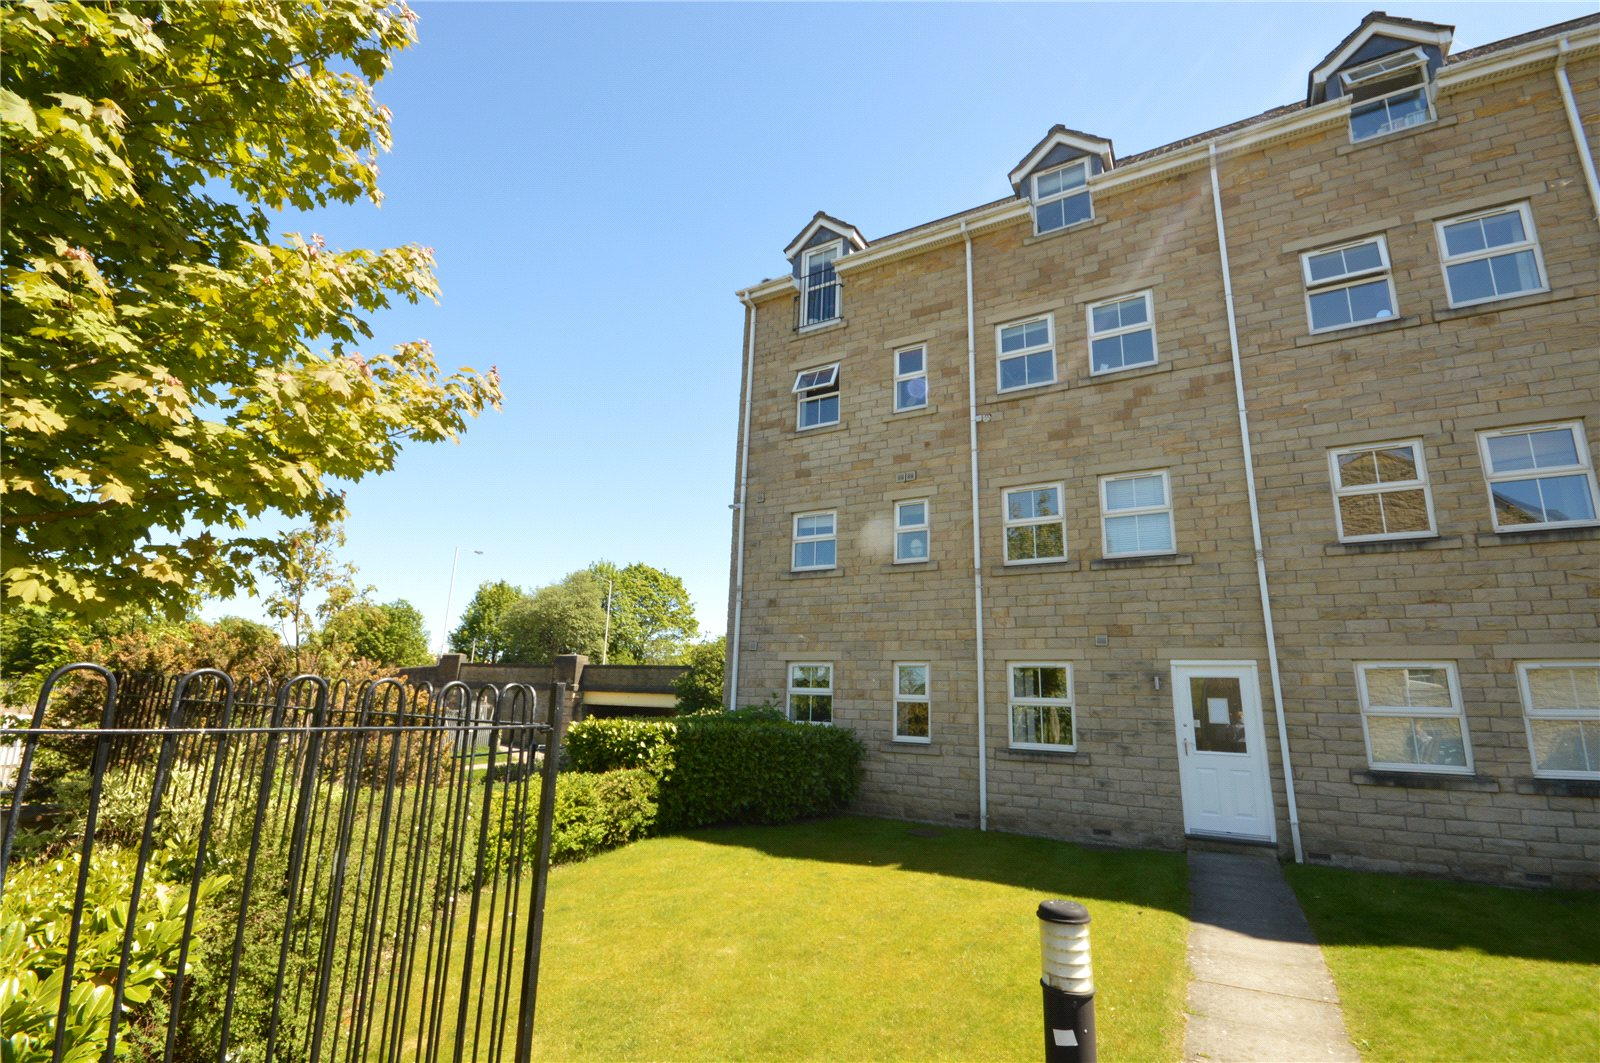 Property for sale in Guiseley exterior apartment building